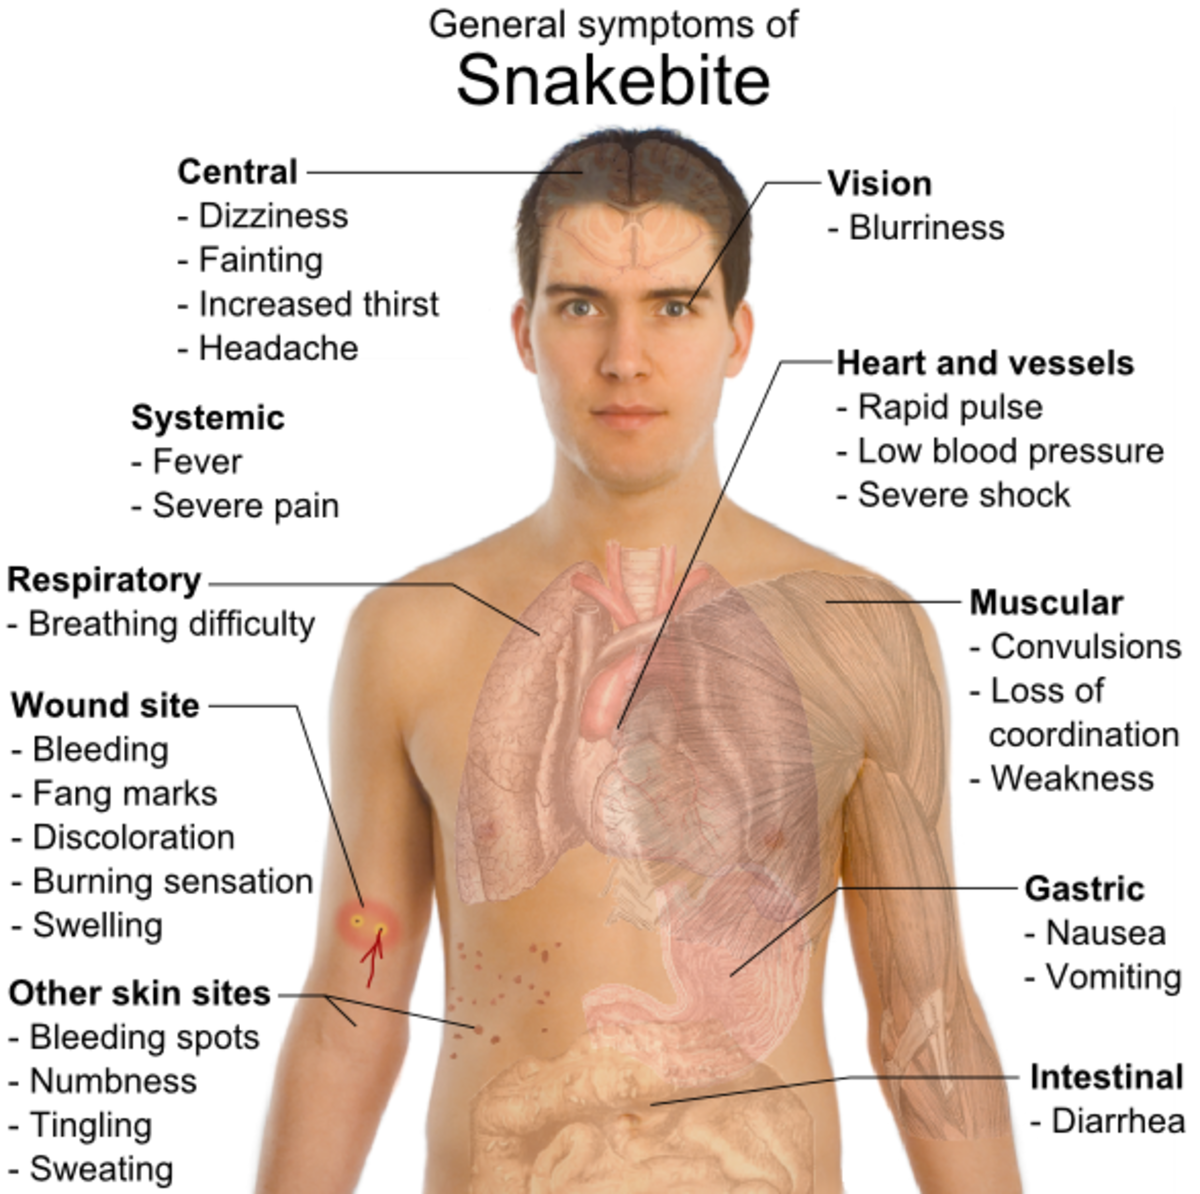 friendly-snakes-vs-not-so-friendly-snakes-identifying-venomous-snakes-in-the-united-states